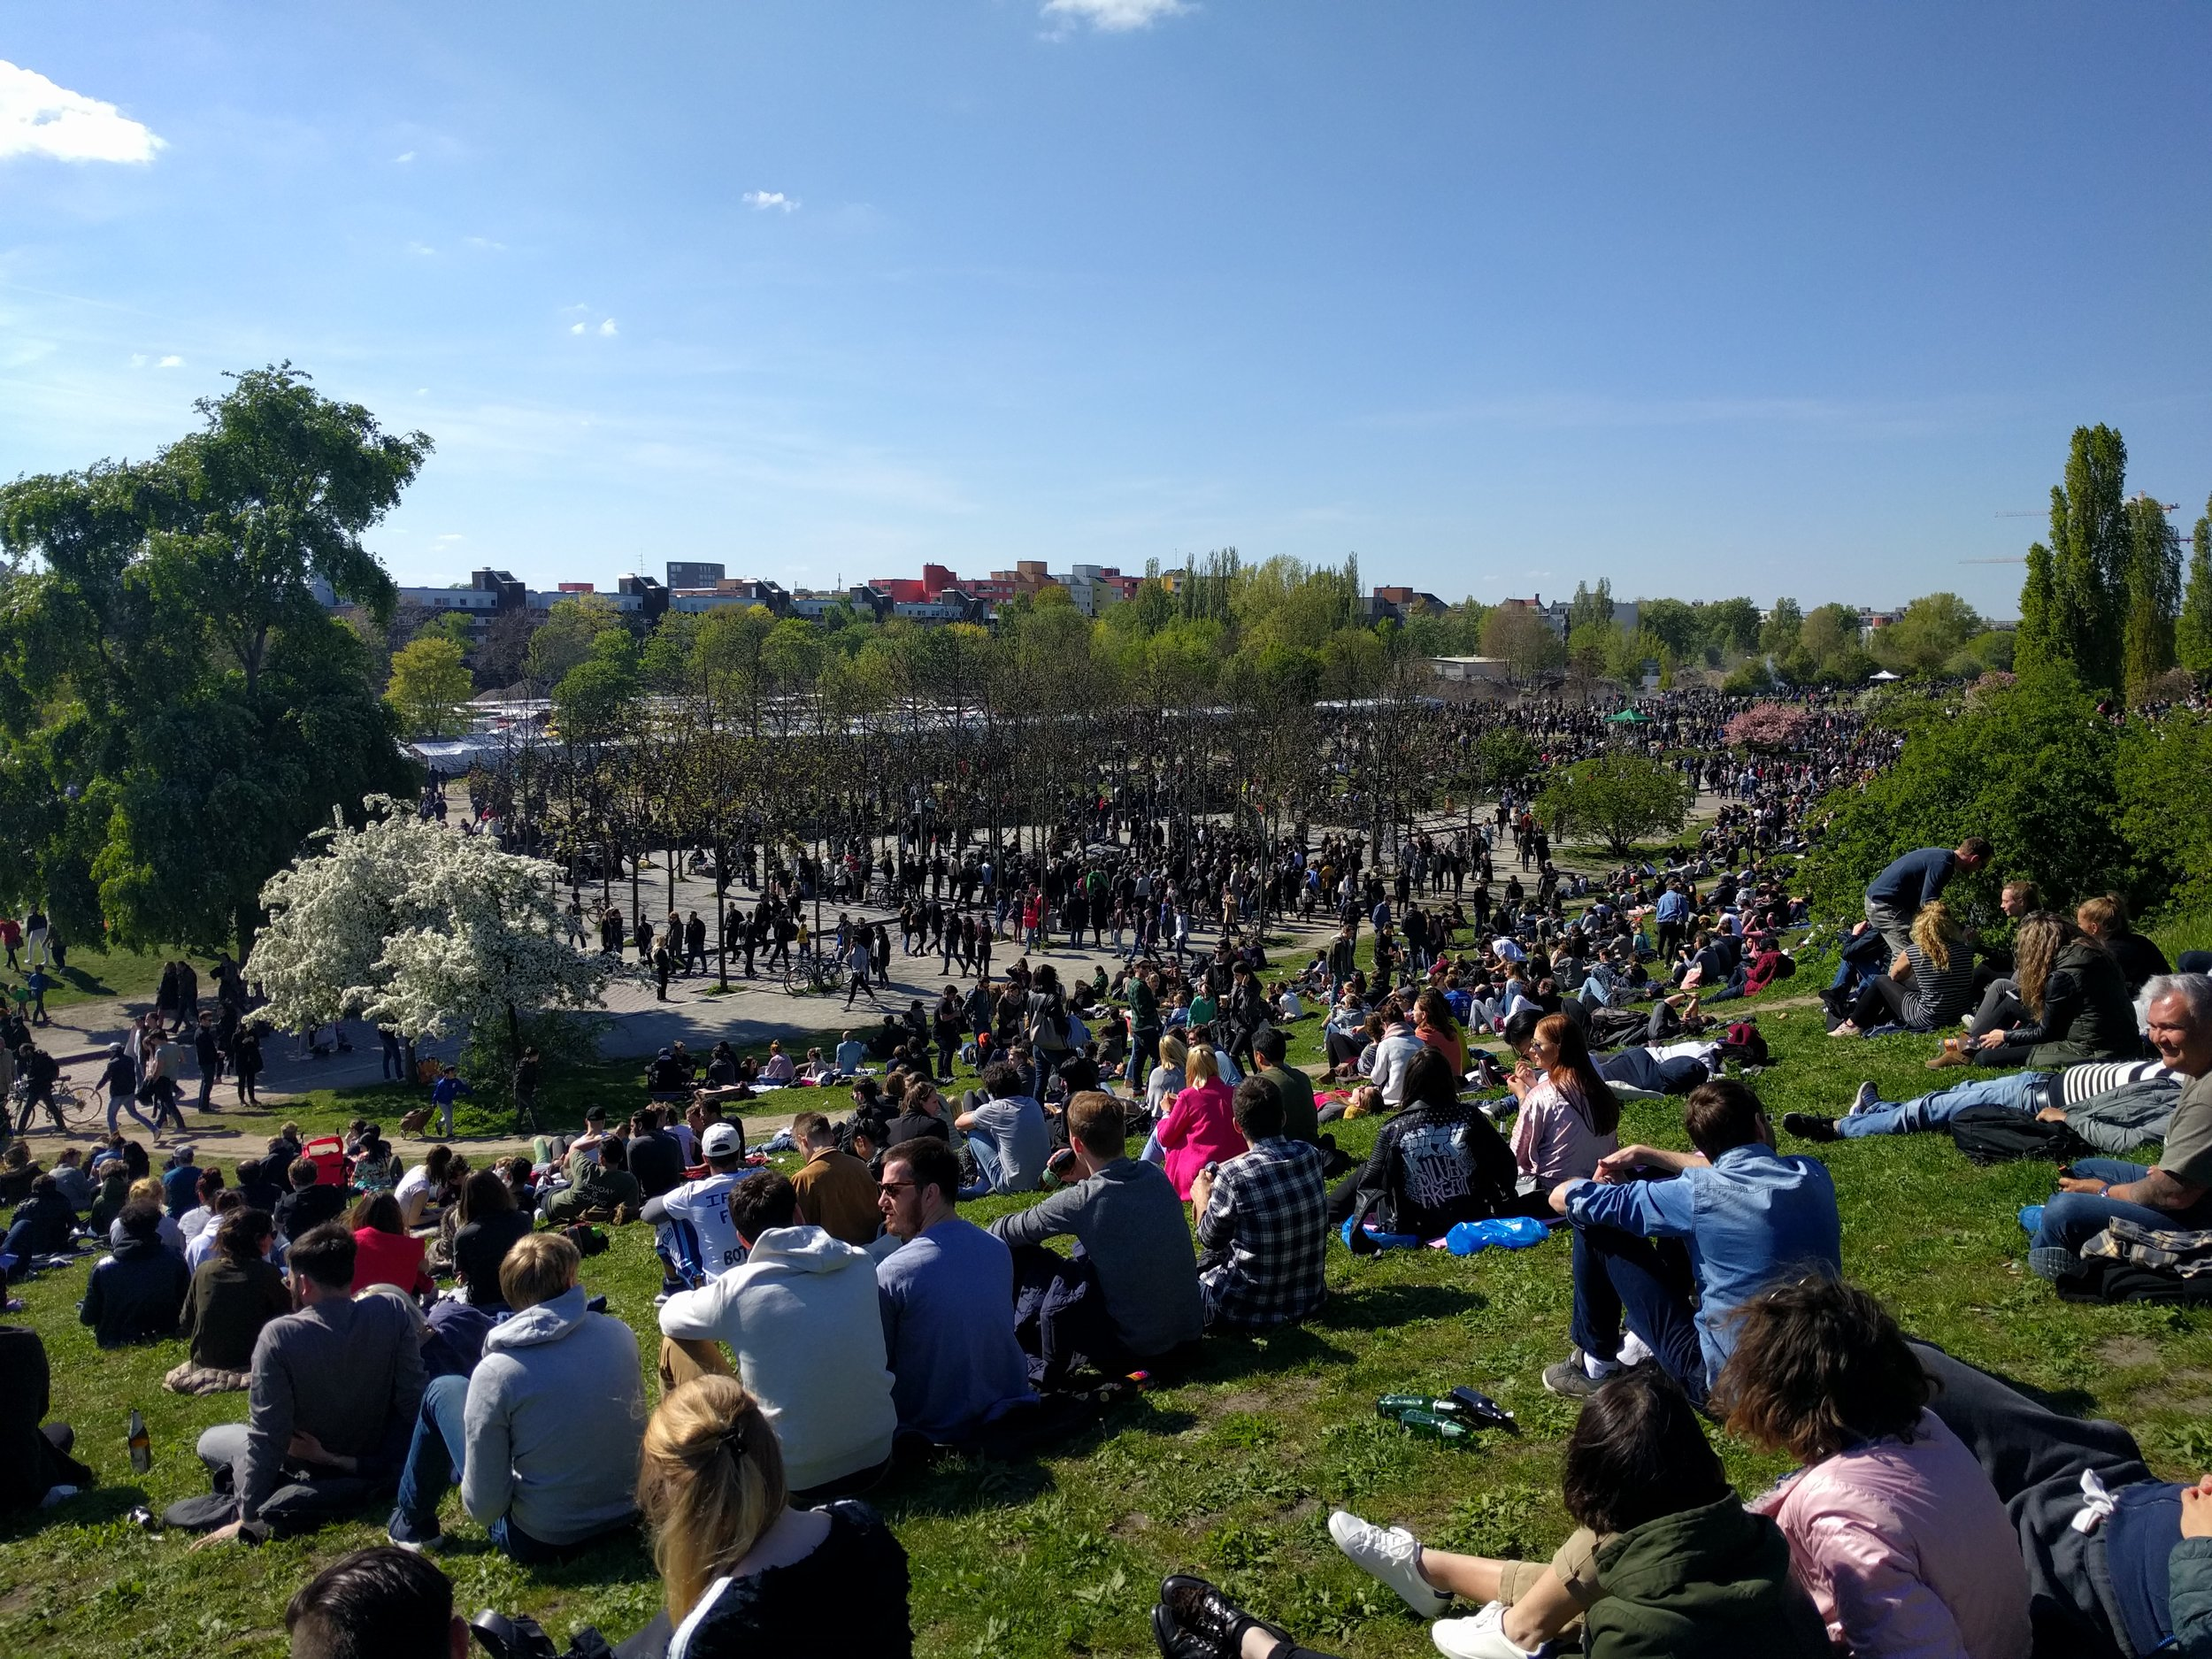 On one of the first warm weekend days in northern Europe, the entire city of Berlin seemed to be in Mauerpark.